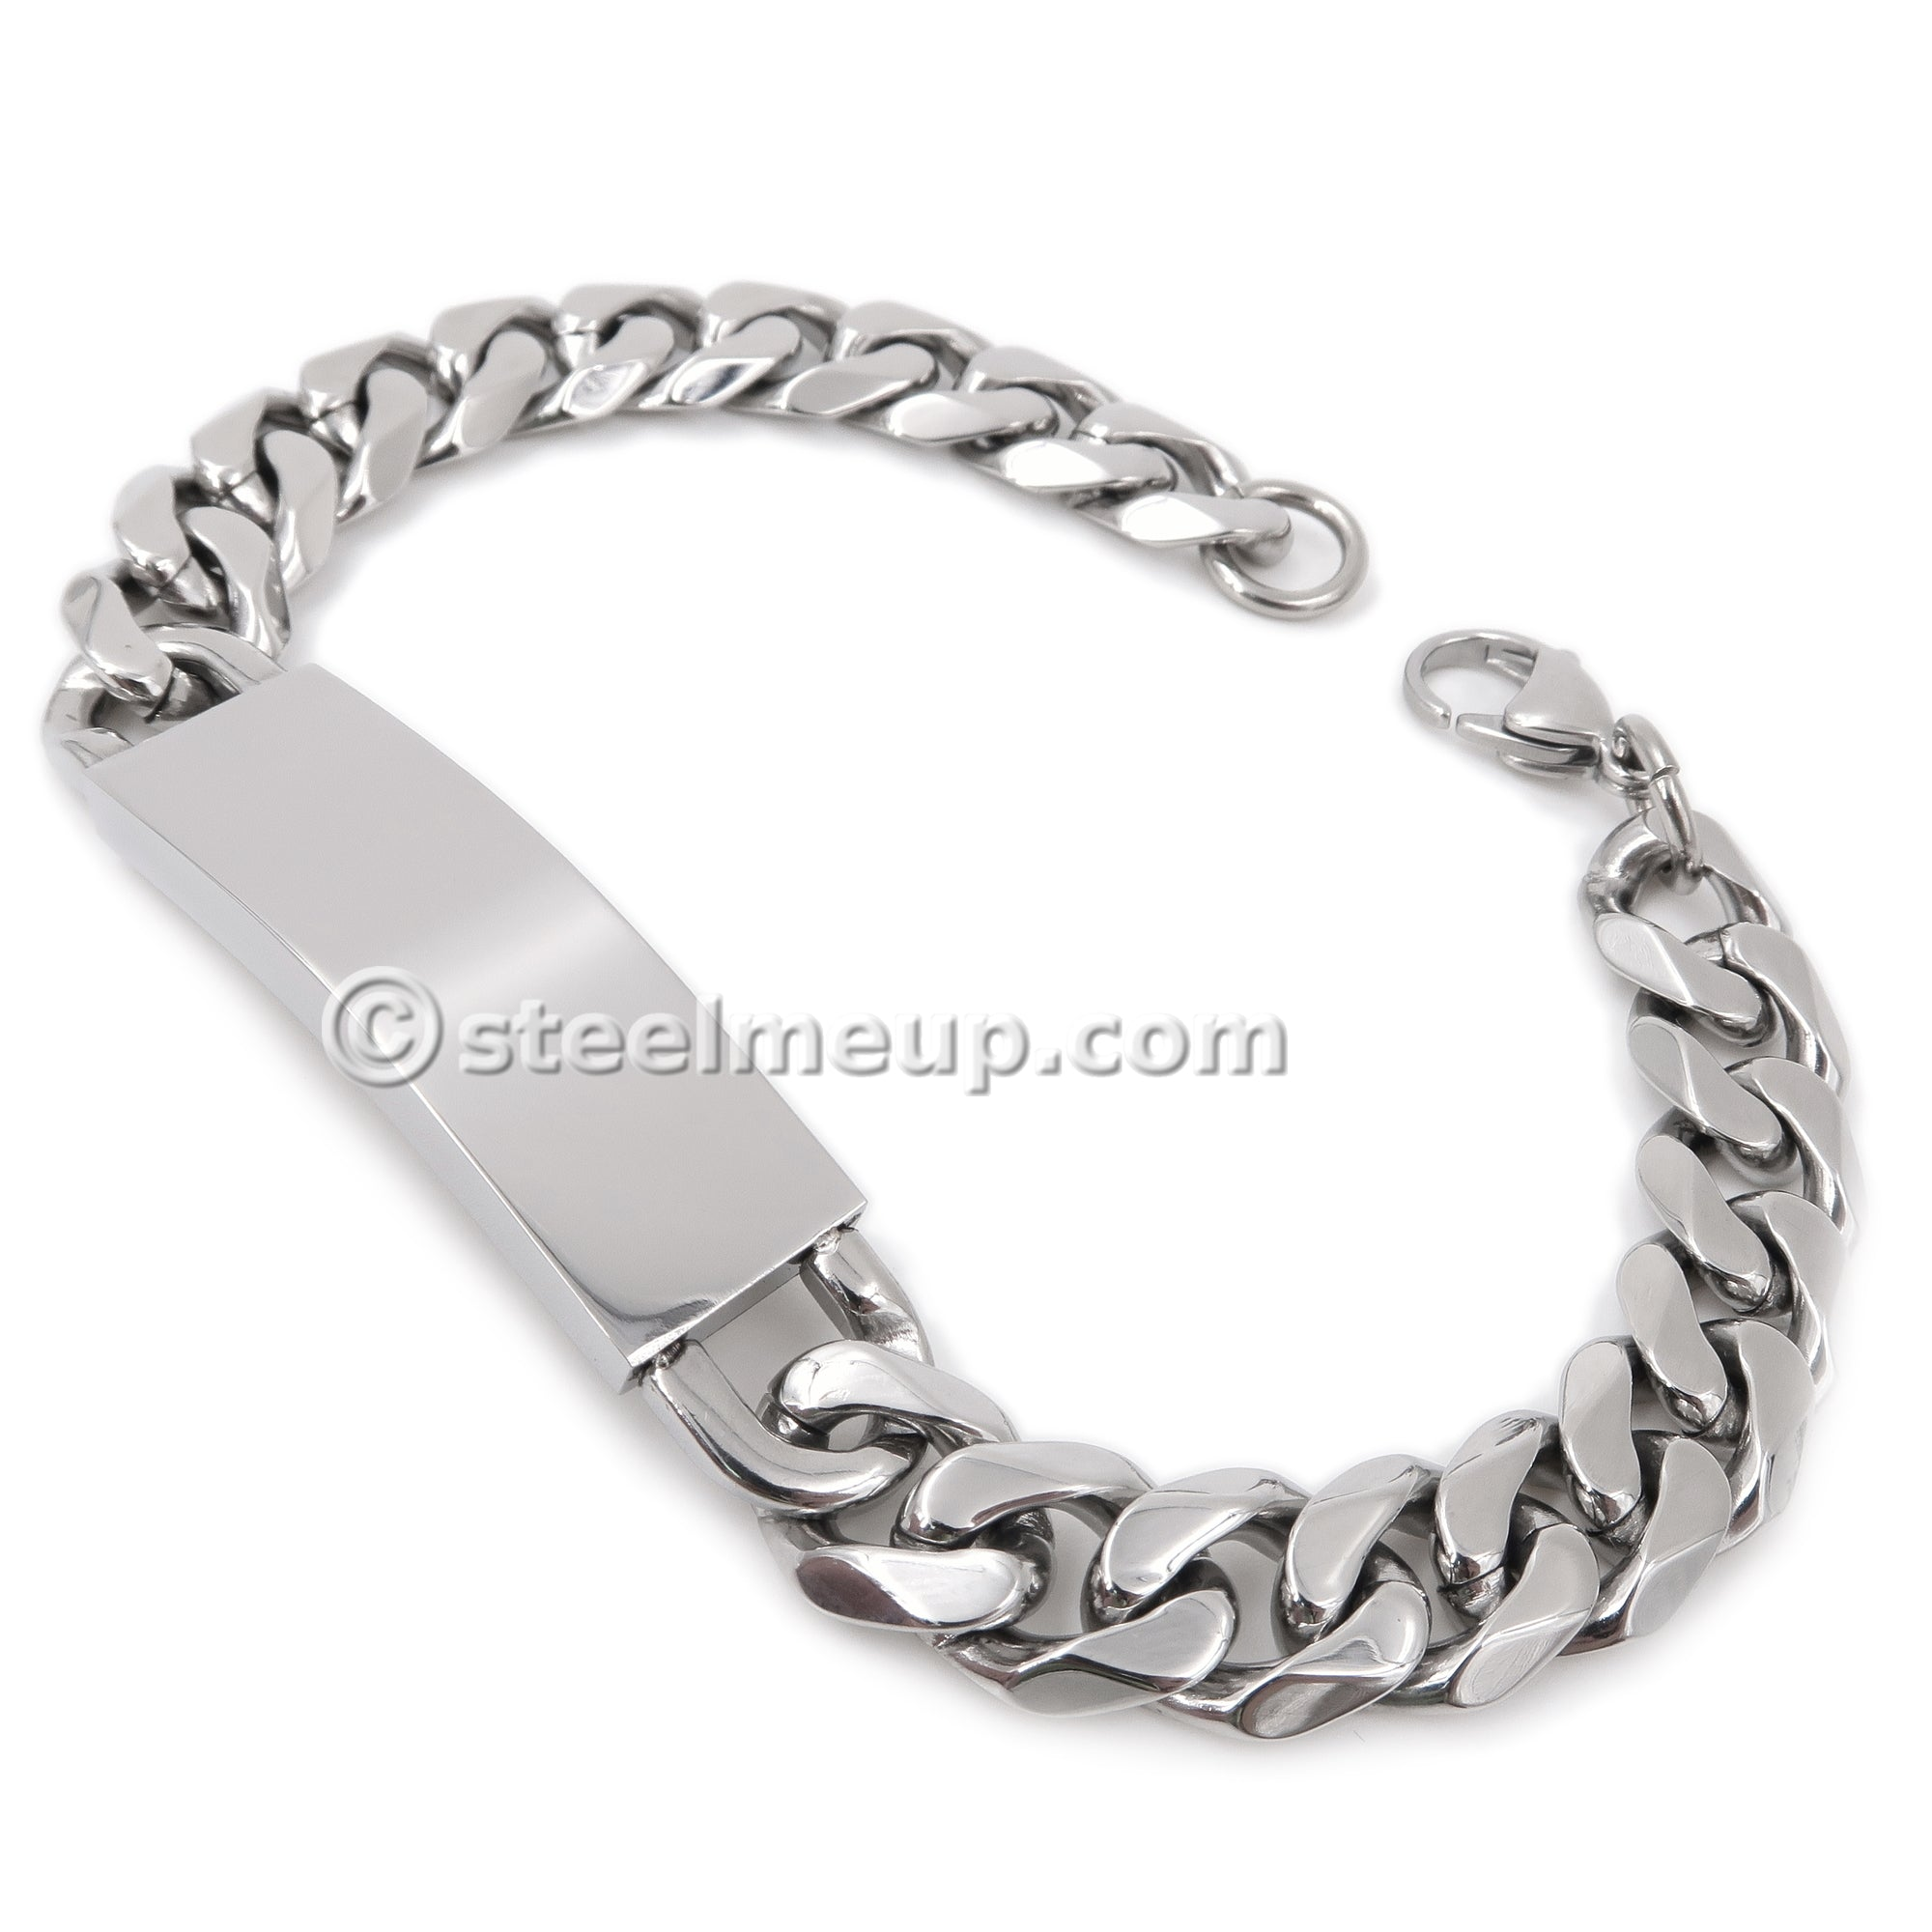 Steelmeup Stainless Steel Faceted Curb Link Chain Plain ID Bracelet for Men 11mm 8inch